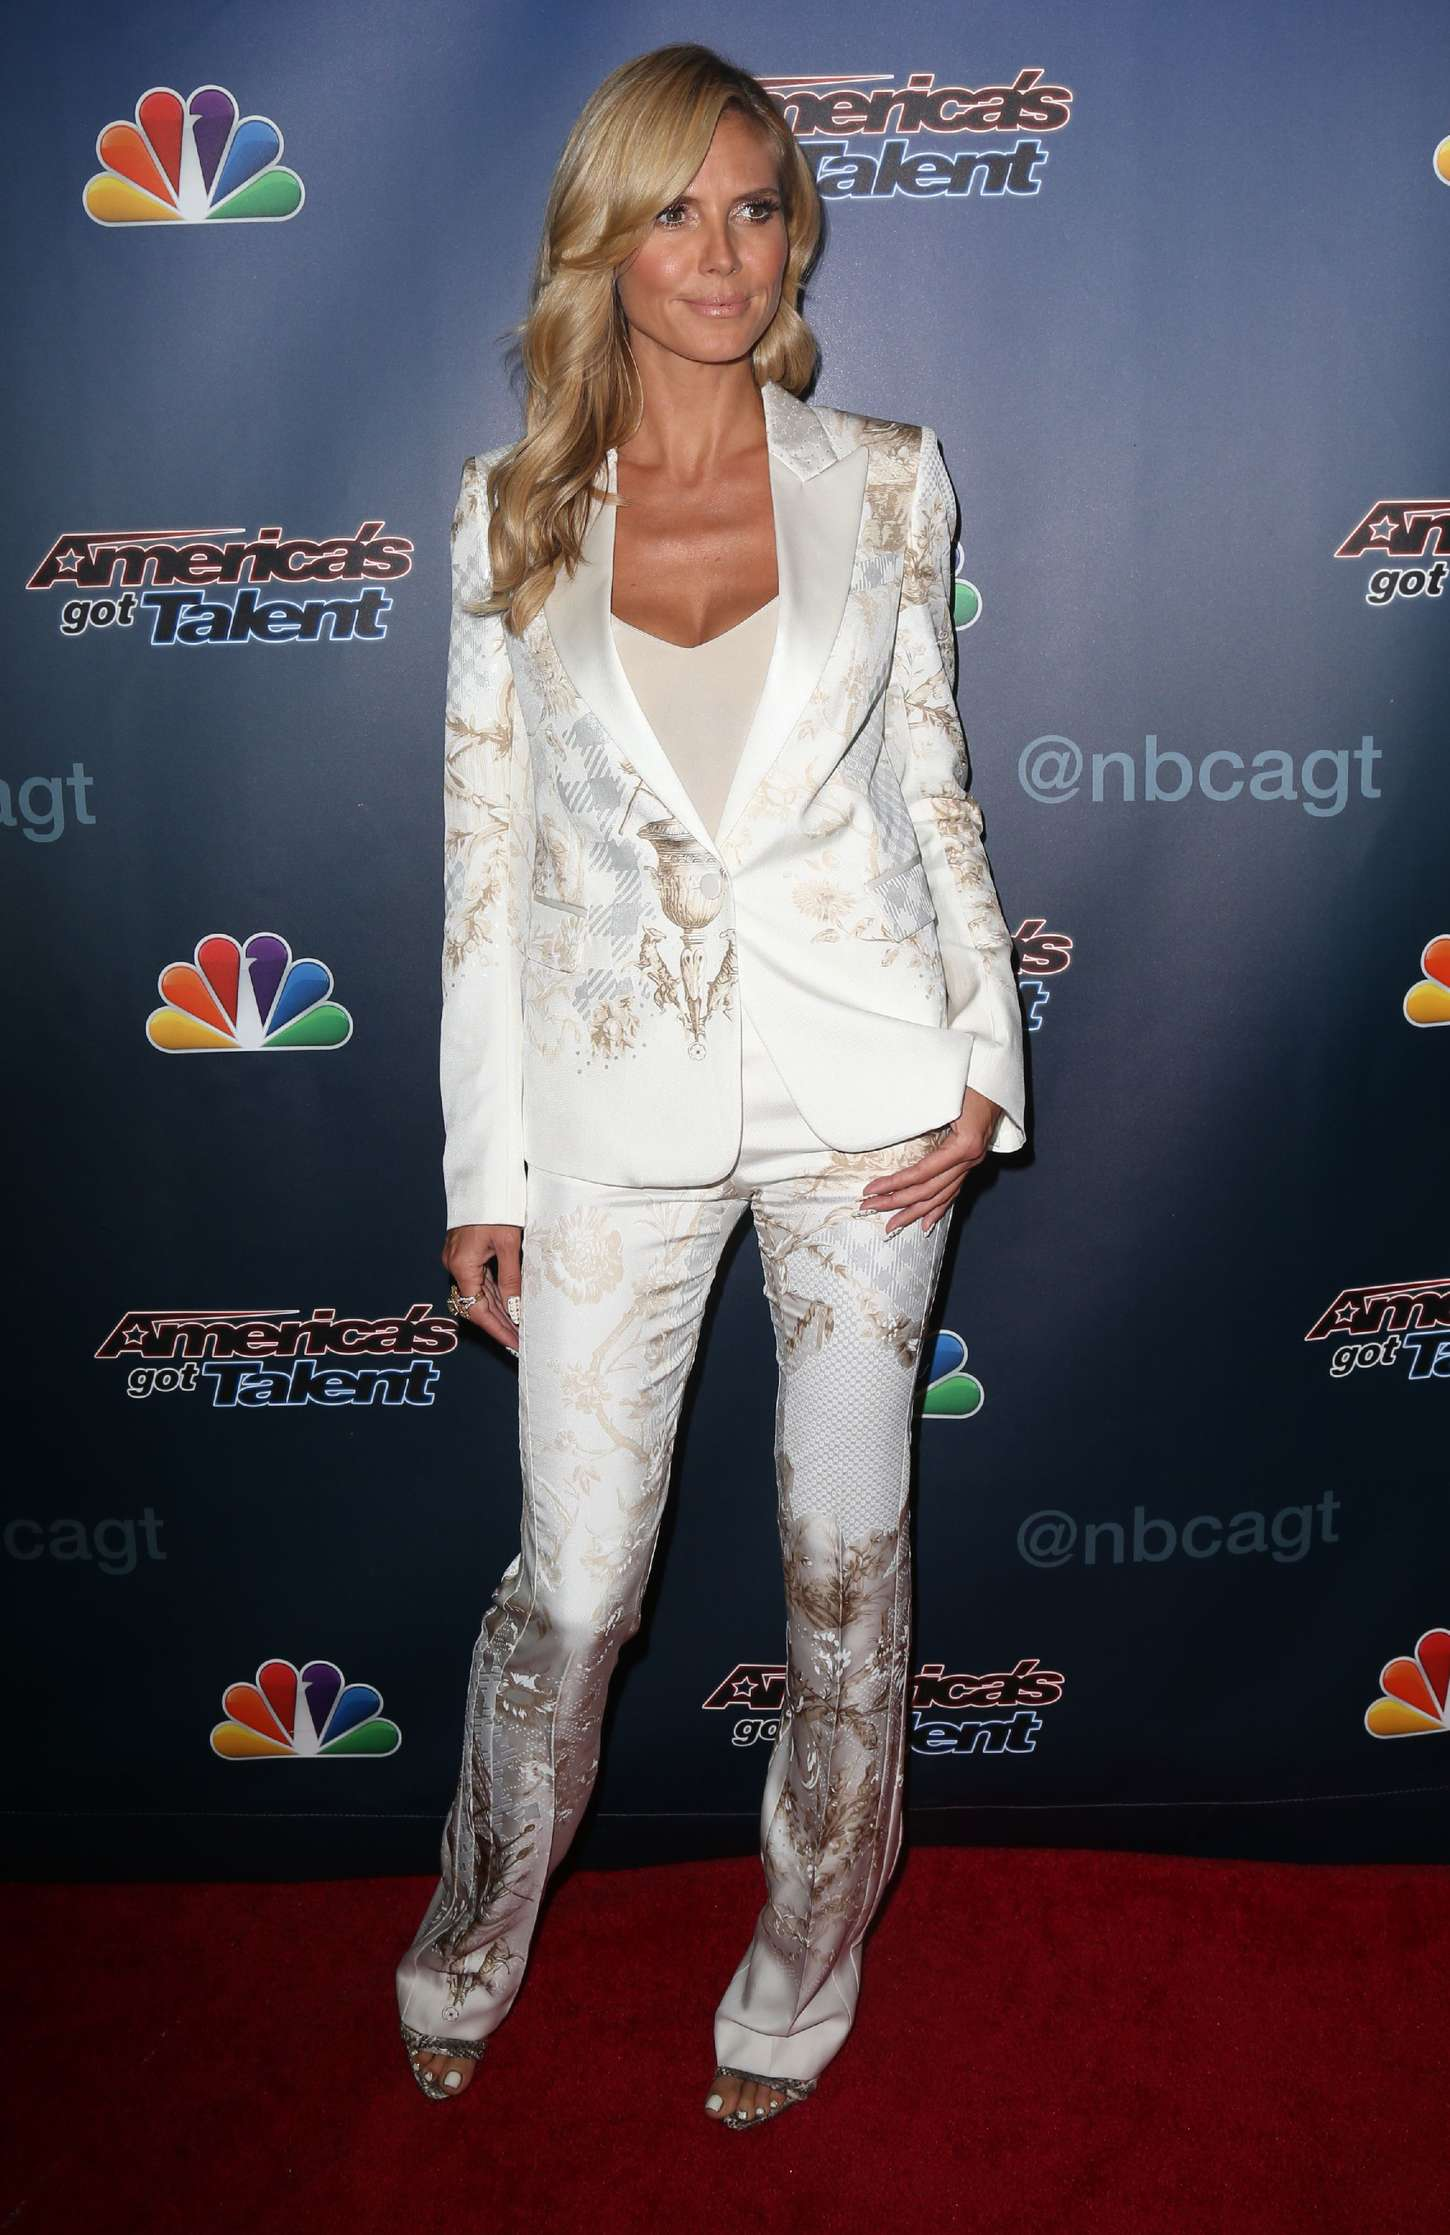 Heidi Klum Americas Got Talent Red Carpet Event 17